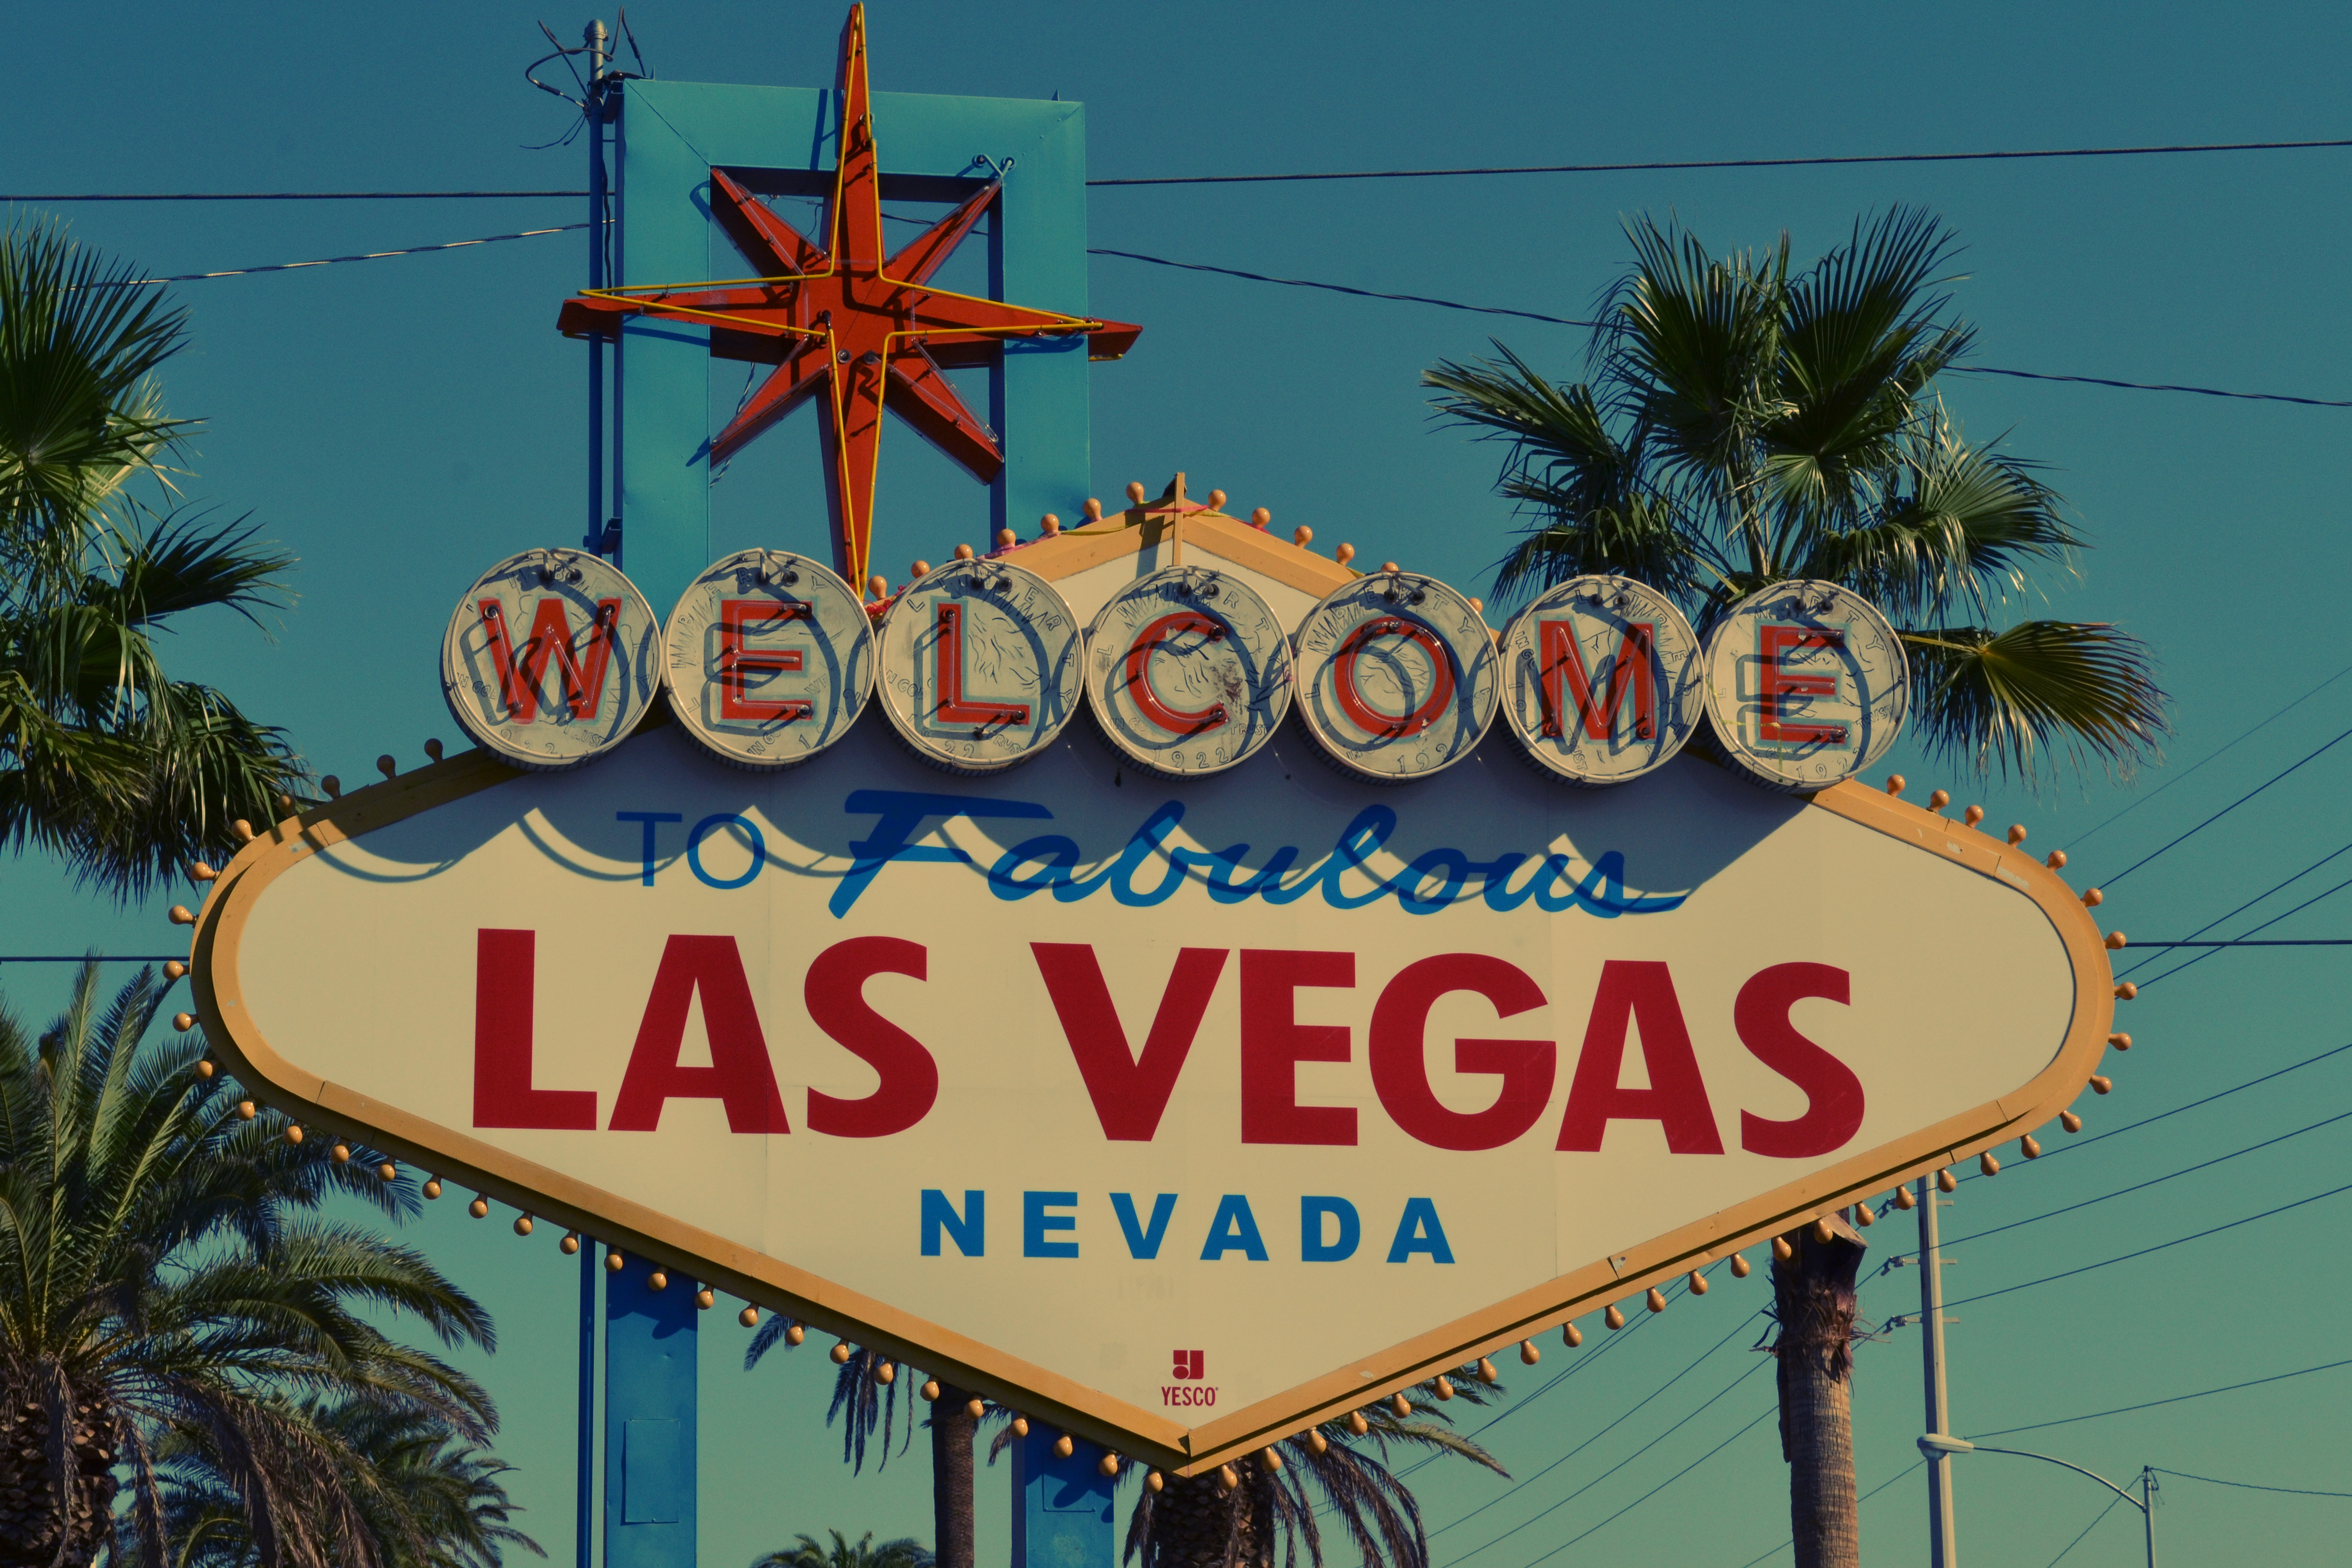 Welcome to Las Vegas sign - The ultimate Las Vegas moving guide